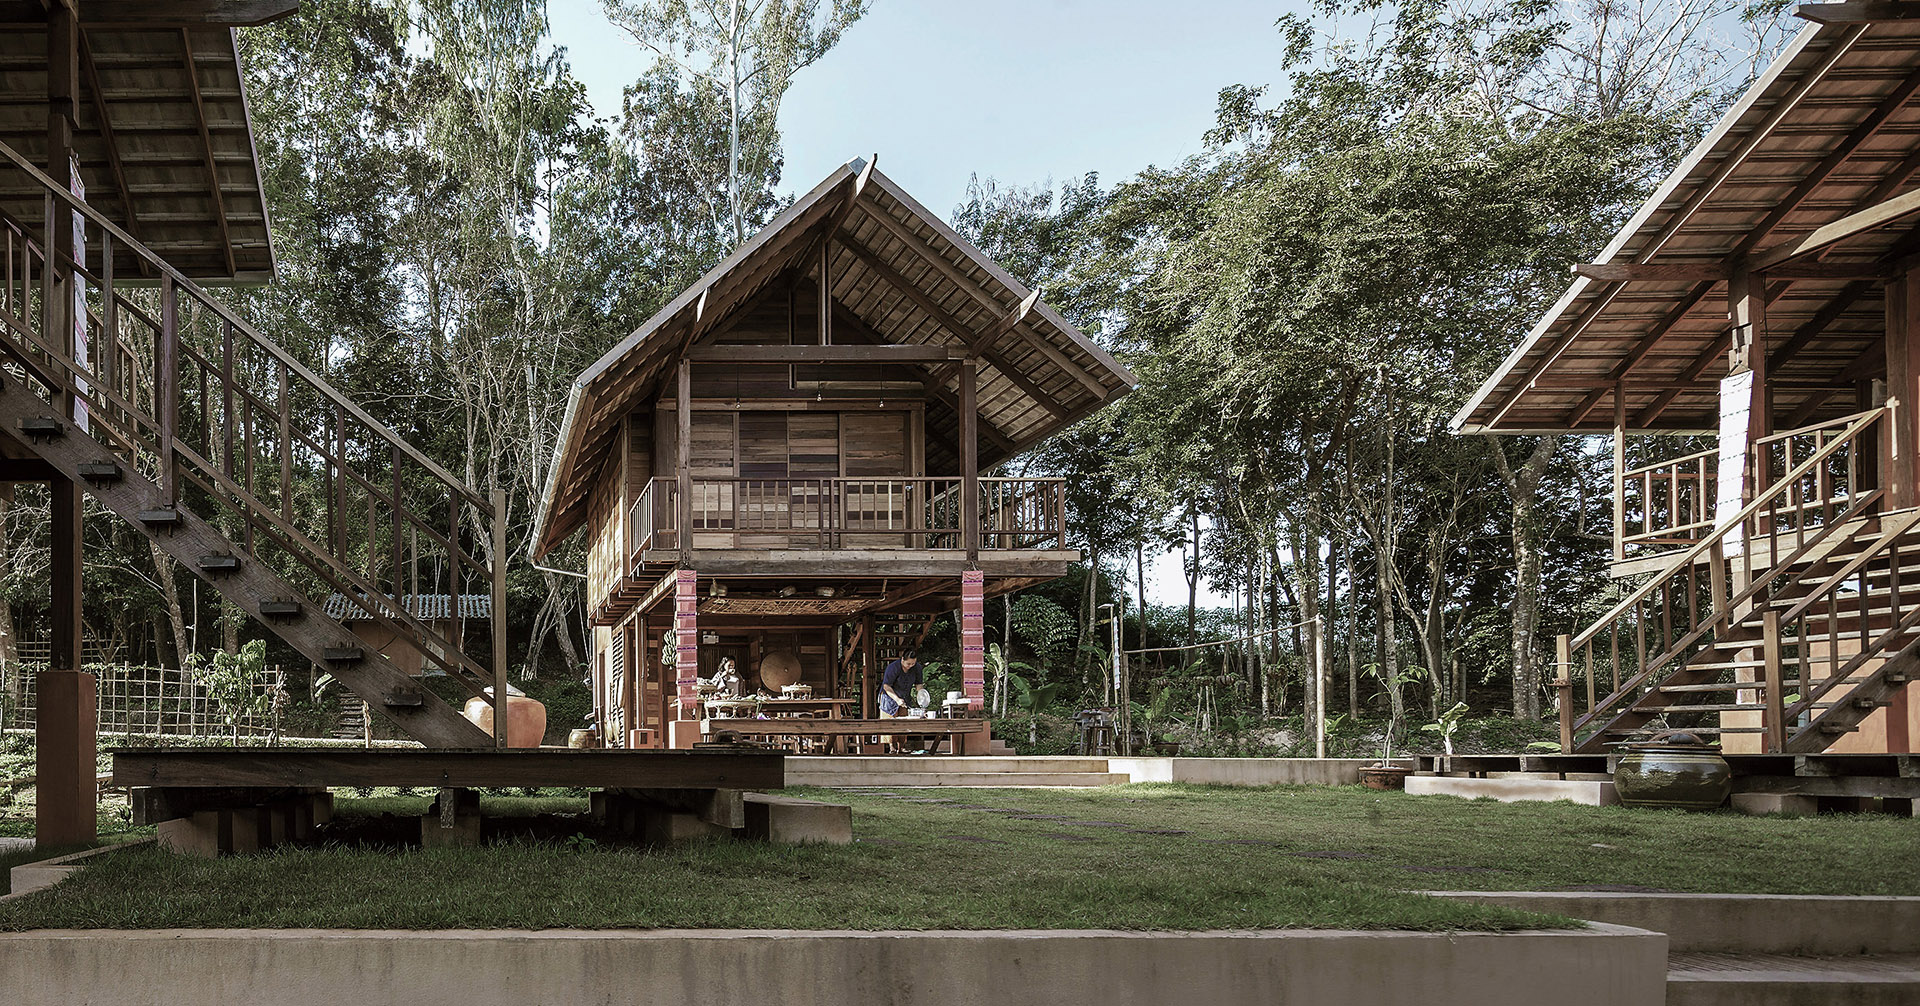 Receptive spaces in a Thai district. Updated vernacular architecture